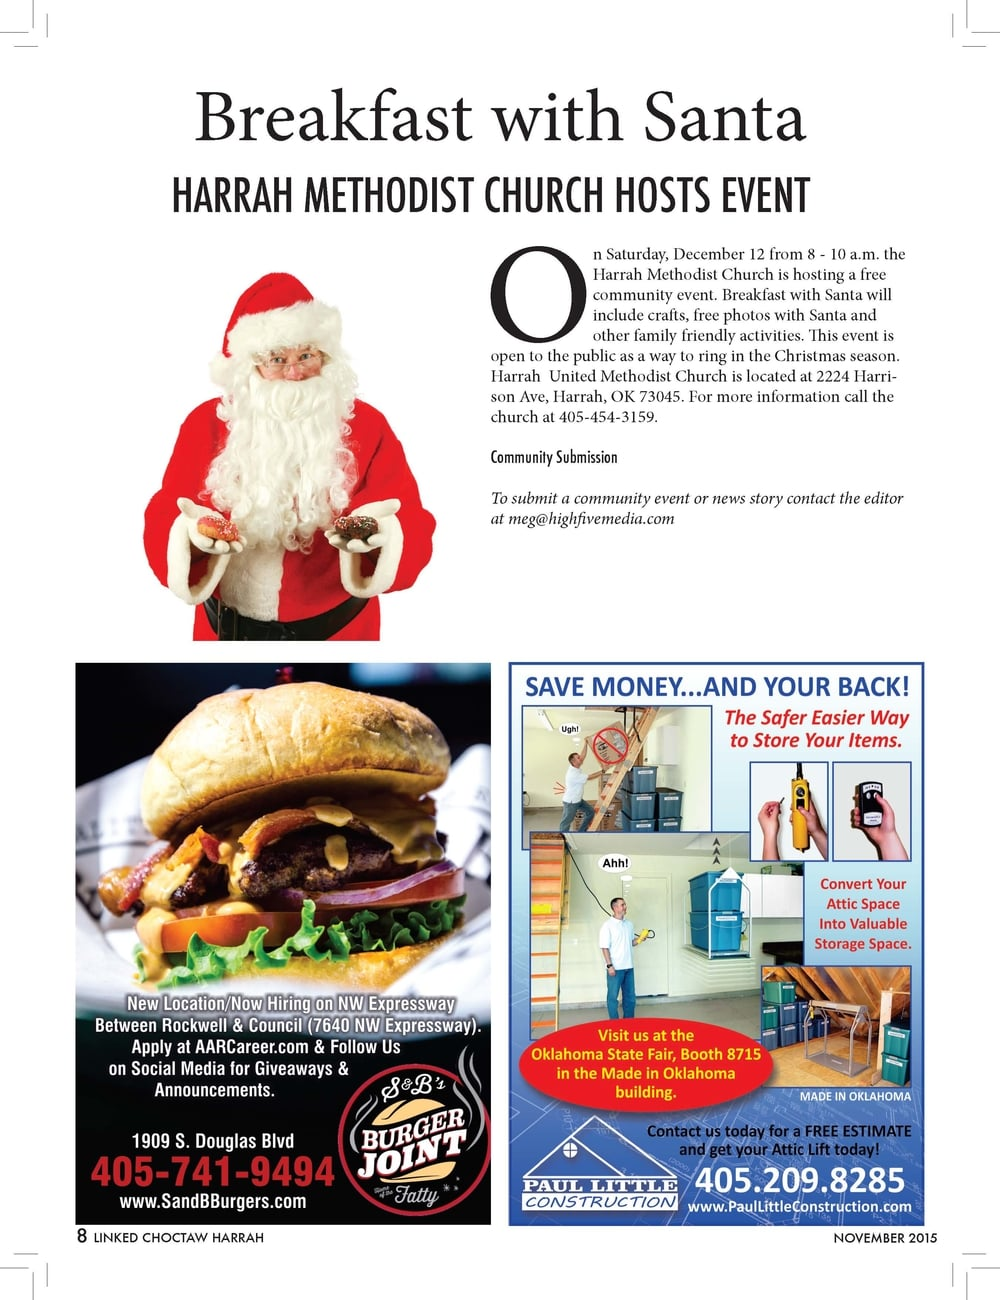 Breakfast with Santa  HARRAH METHODIST CHURCH HOSTS EVENT  On Saturday, December 12 from 8 - 10 a.m. the  Harrah Methodist Church is hosting a free  community event. Breakfast with Santa will  include crafts, free photos with Santa and  other family friendly activities. This event is  open to the public as a way to ring in the Christmas season.  Harrah United Methodist Church is located at 2224 Harrison  Ave, Harrah, OK 73045. For more information call the  church at 405-454-3159.  Community Submission  To submit a community event or news story contact the editor  at meg@highfivemedia.com